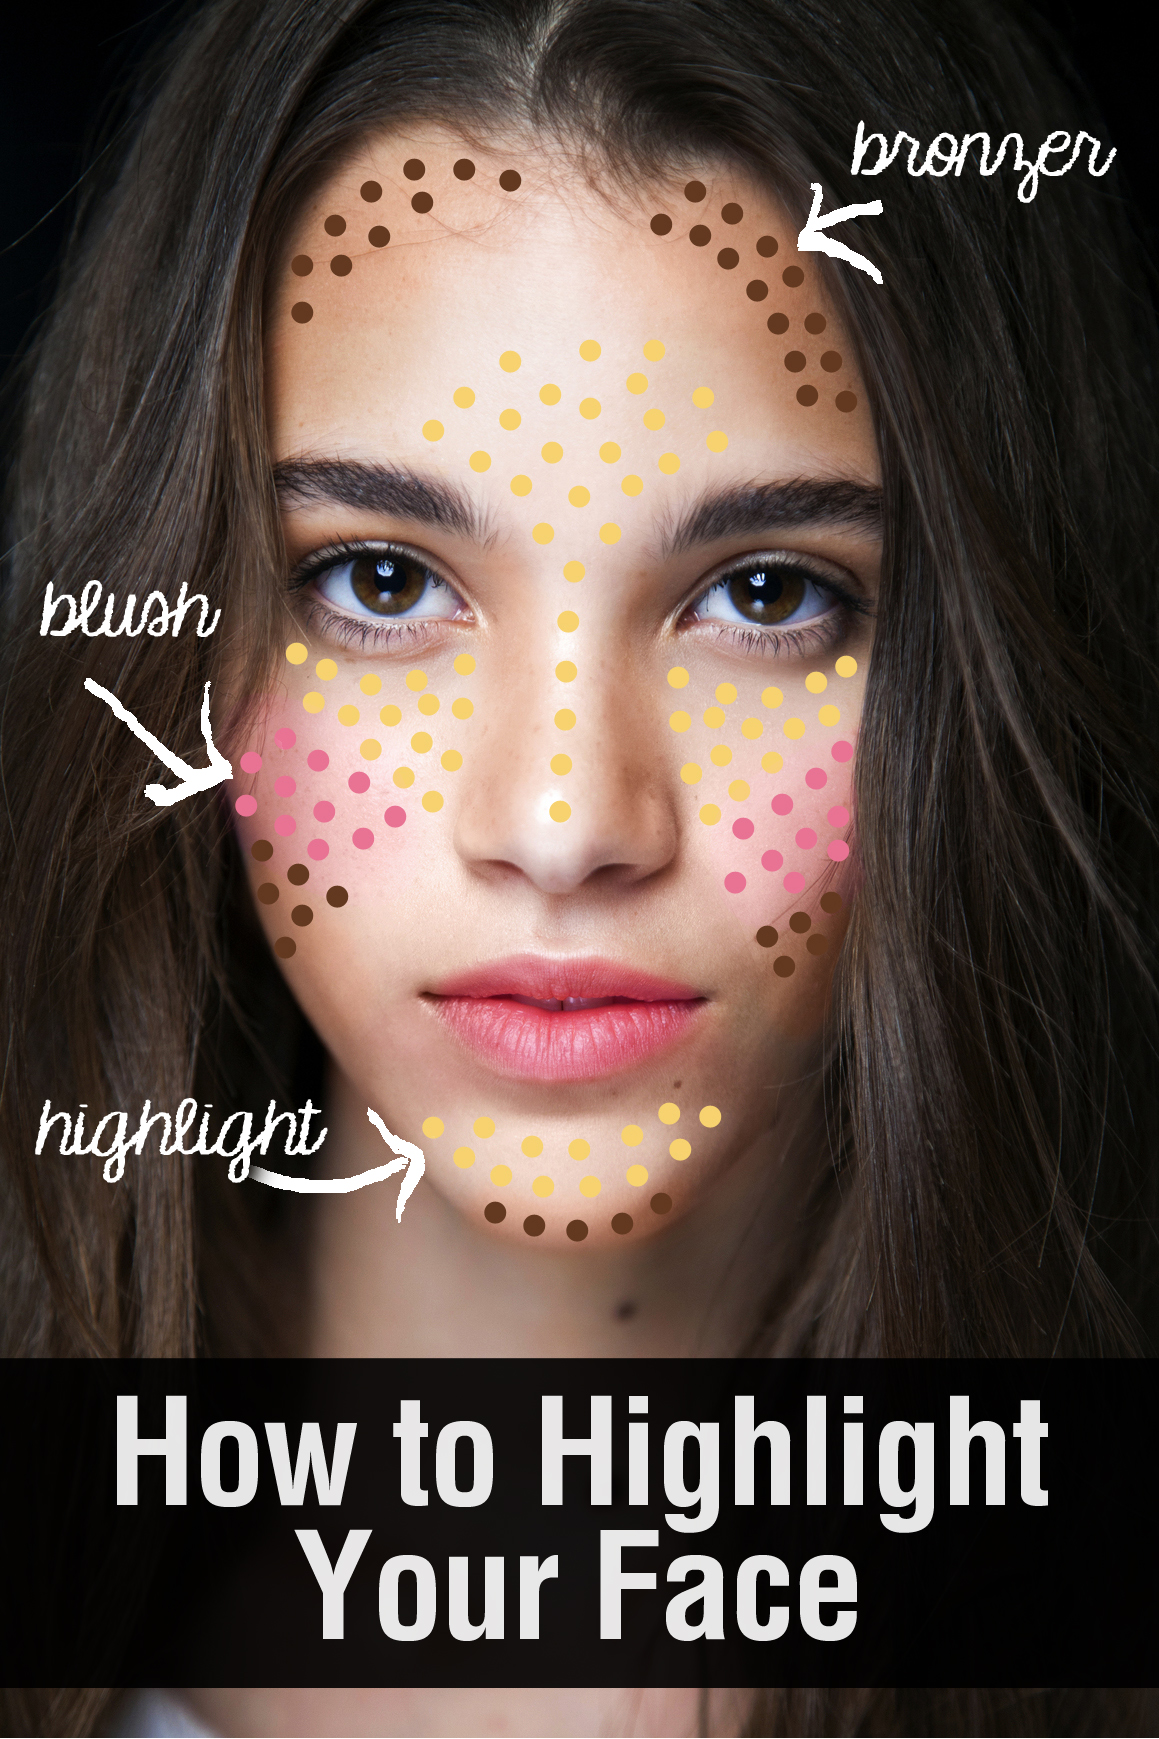 Map of makeup highlighting